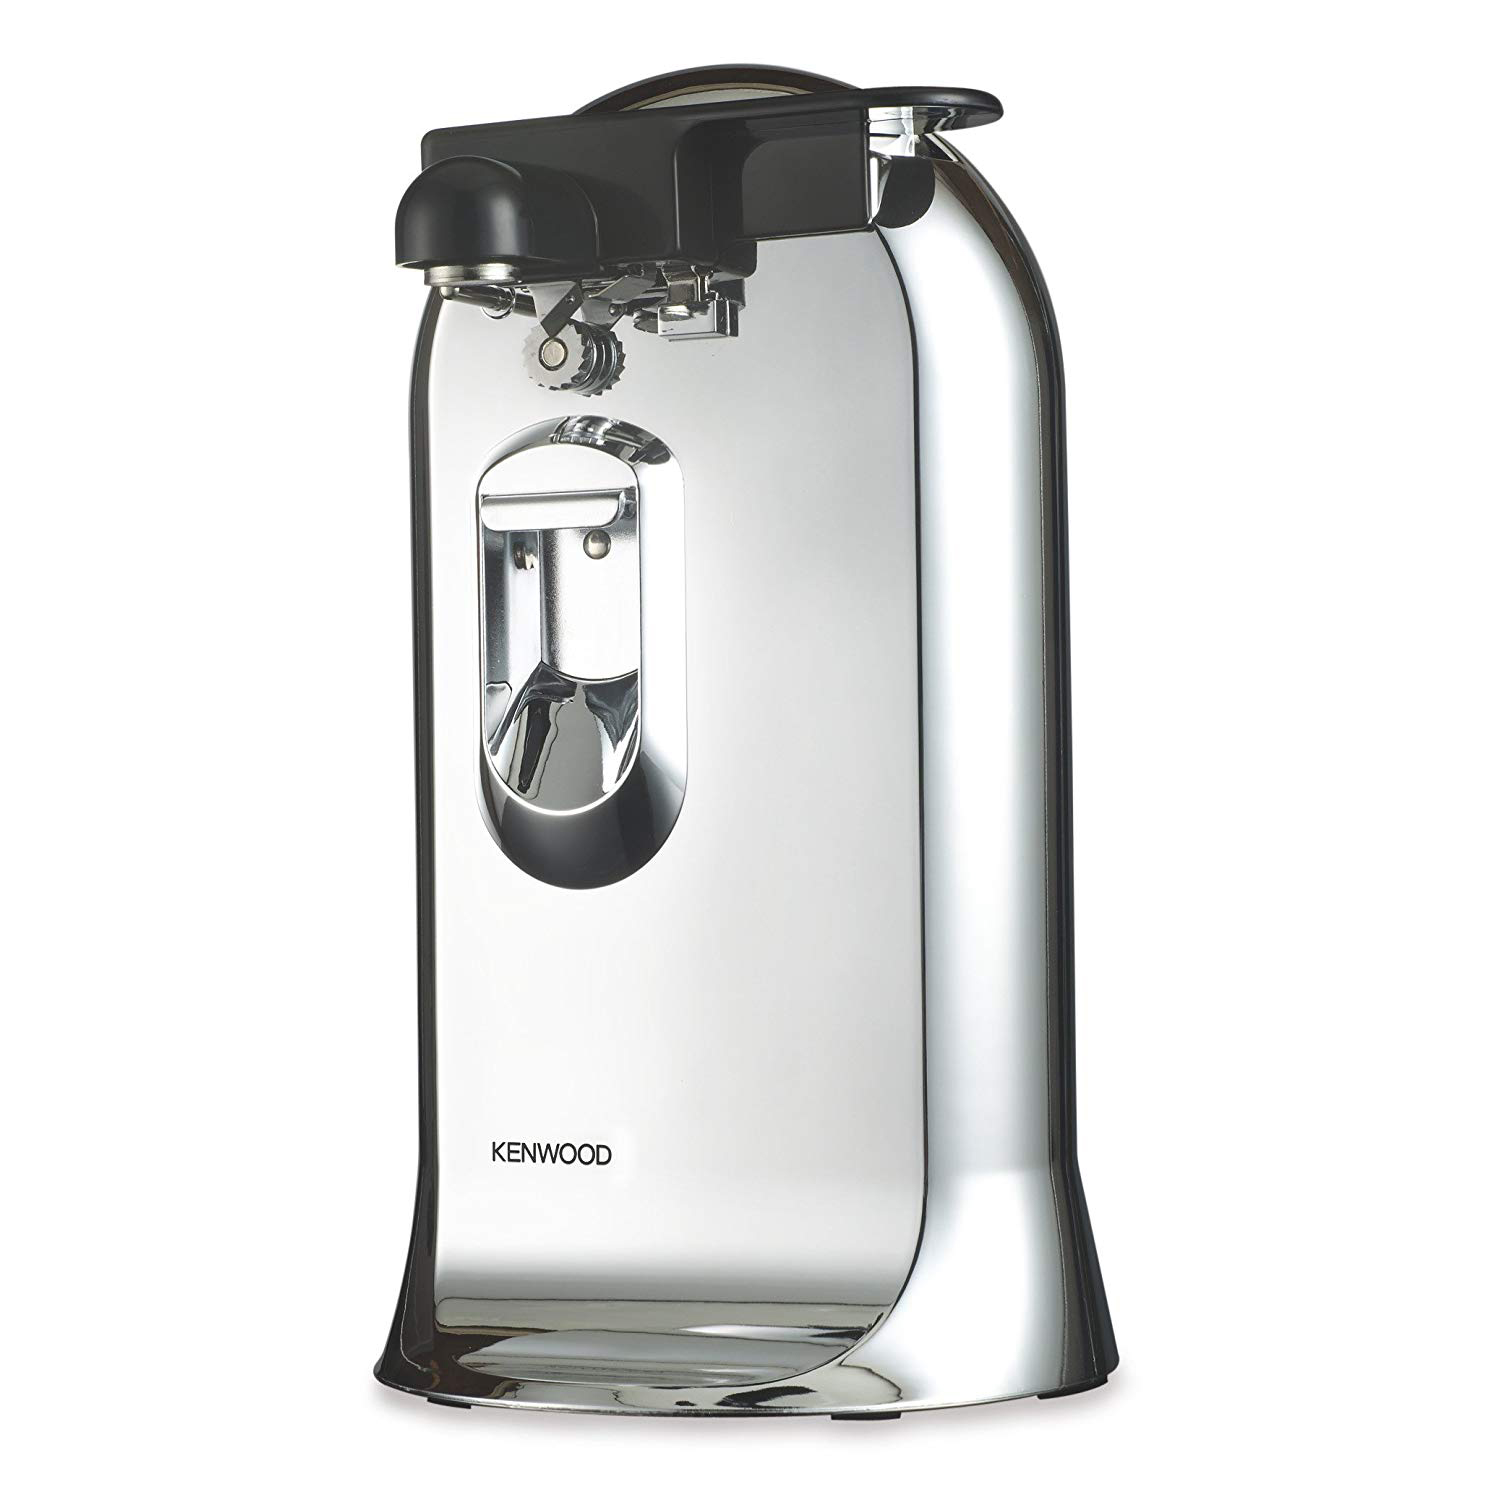 Kenwood 3-in-1 Can Opener CO606 - Silver